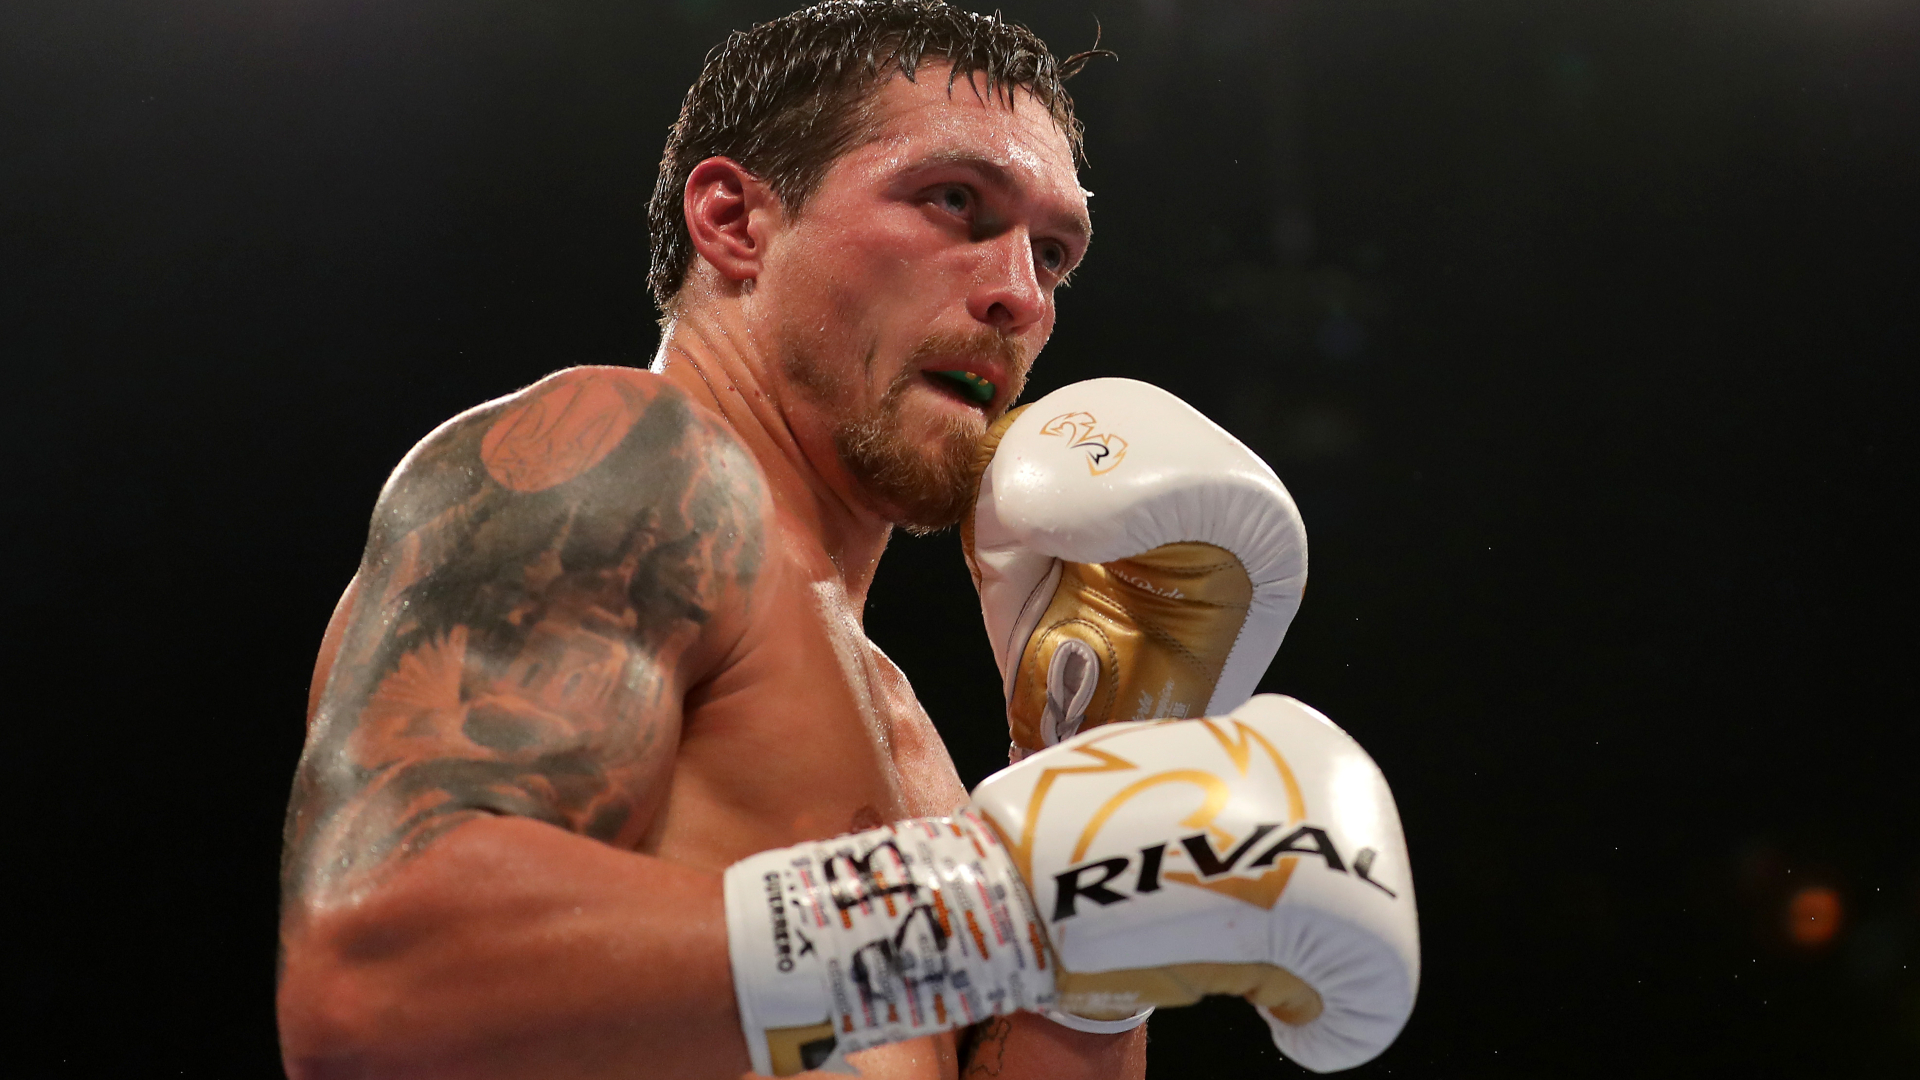 Joshua questions Usyk's 'pitty-patty' style ahead of Chisora fight